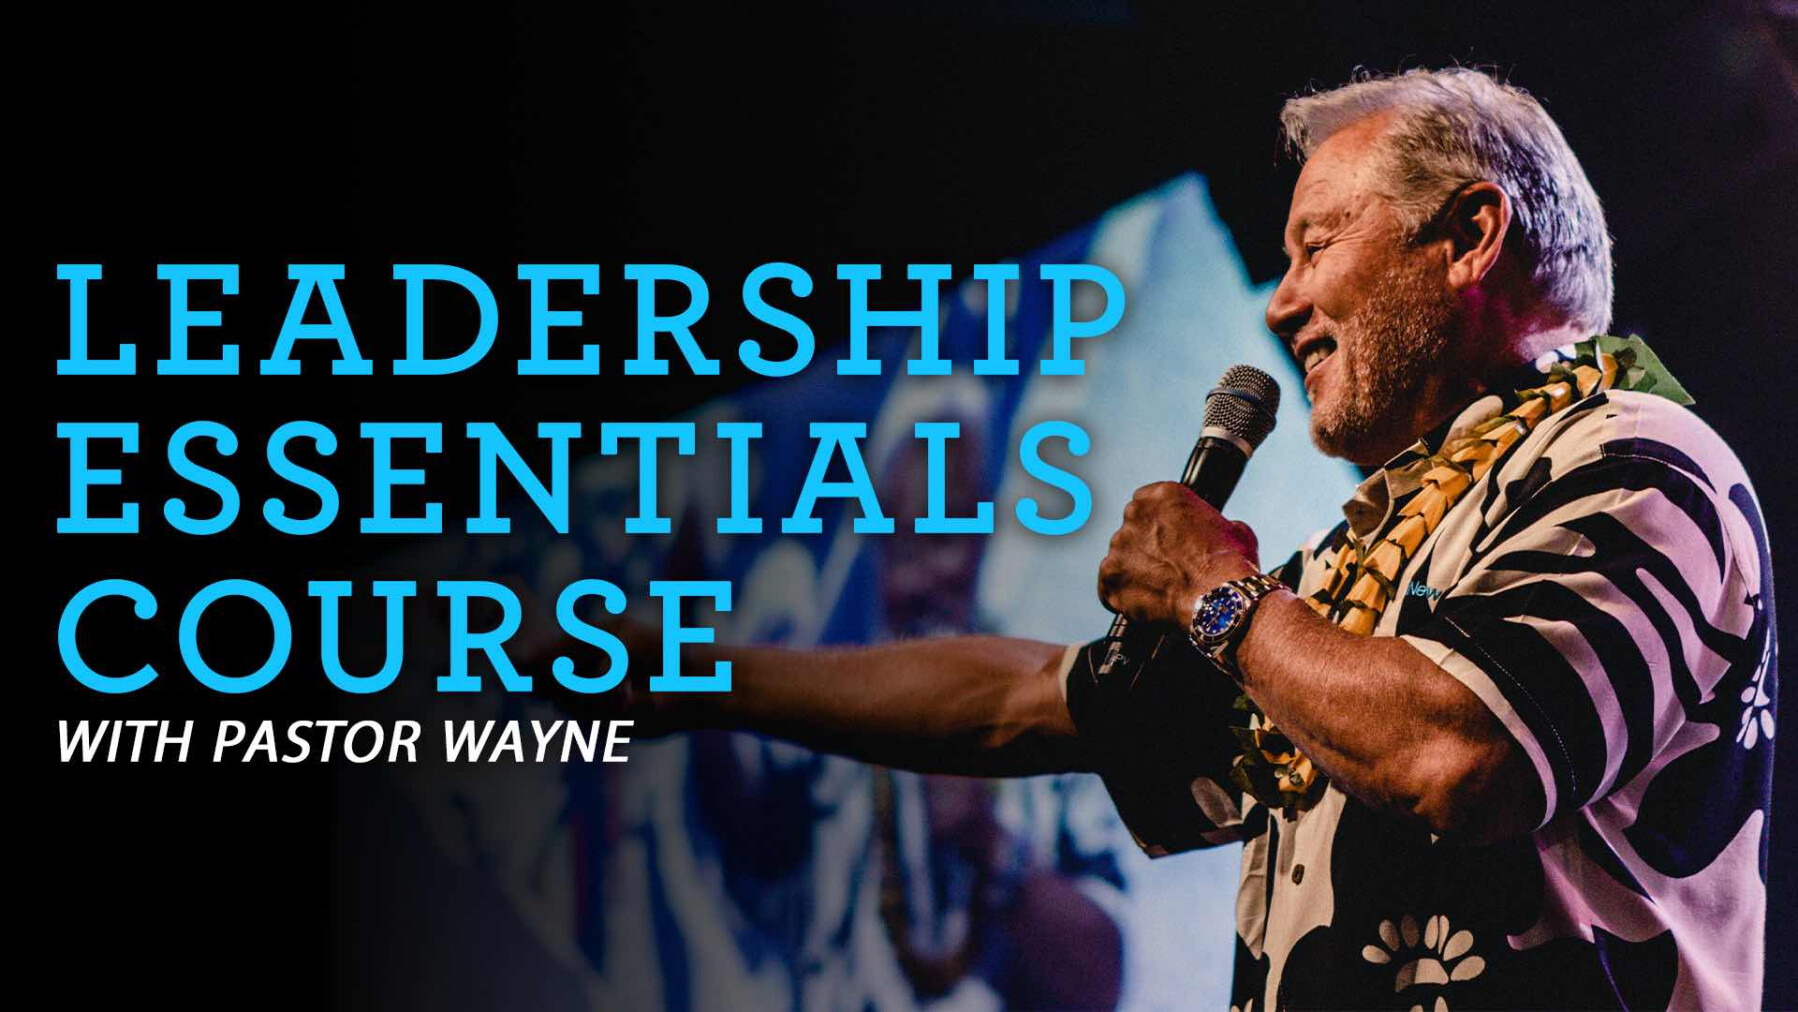 Leadership Essentials Course with Pastor Wayne